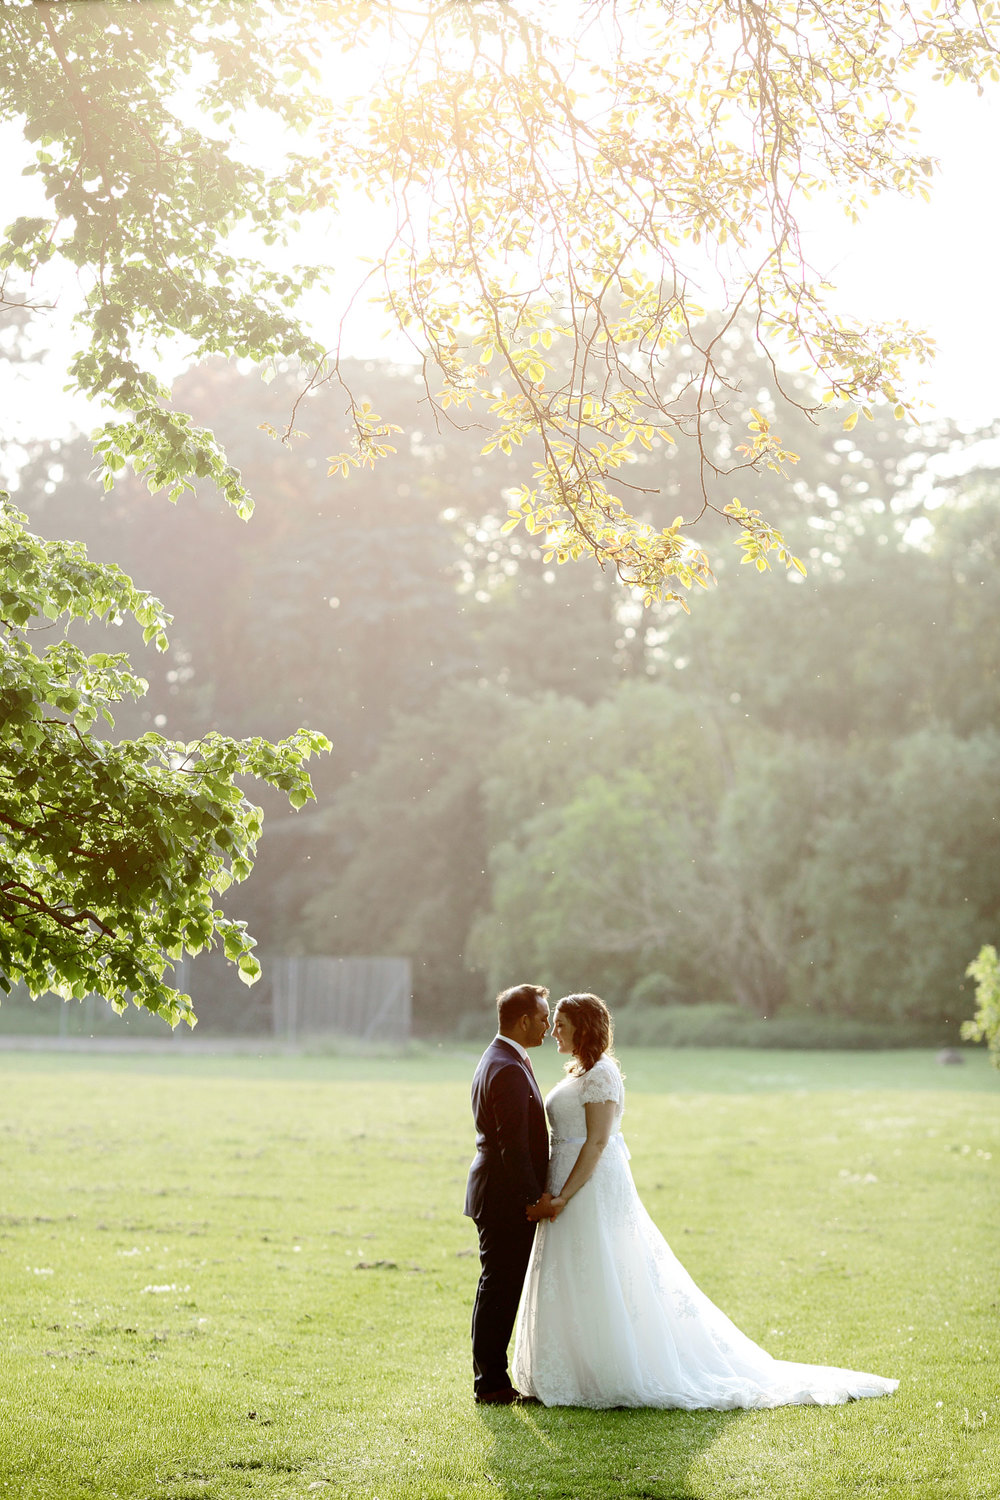 Bradbourne House wedding photo 54.jpg